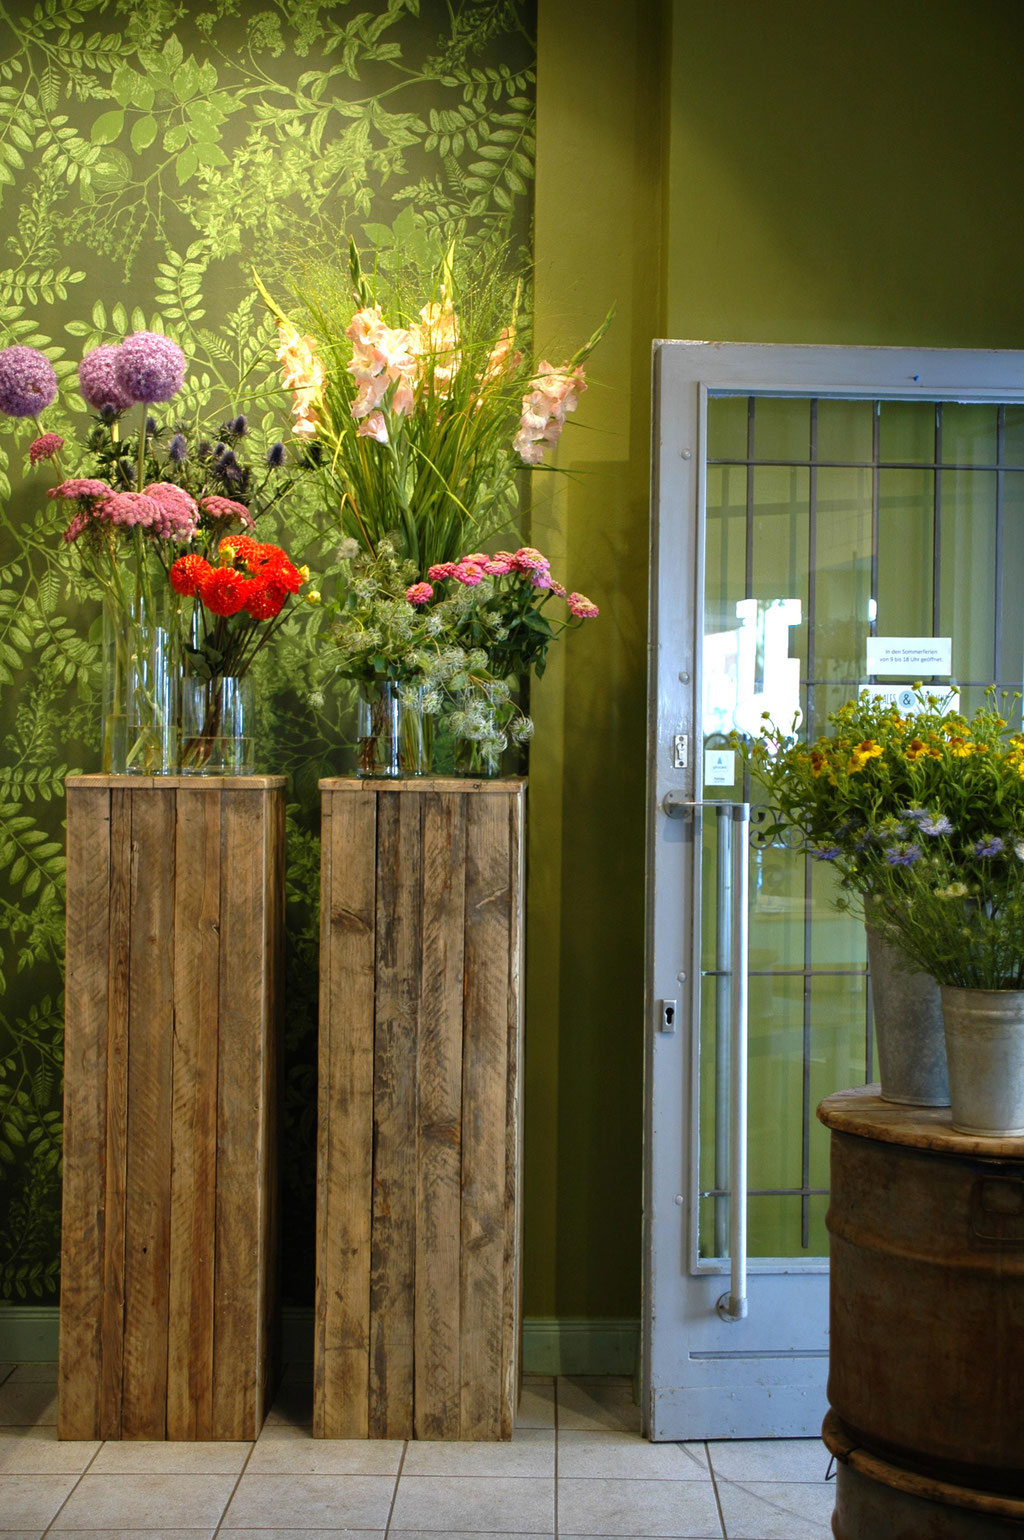 redesign for a flower shop with an individually recolored wallpaper and matching wall color